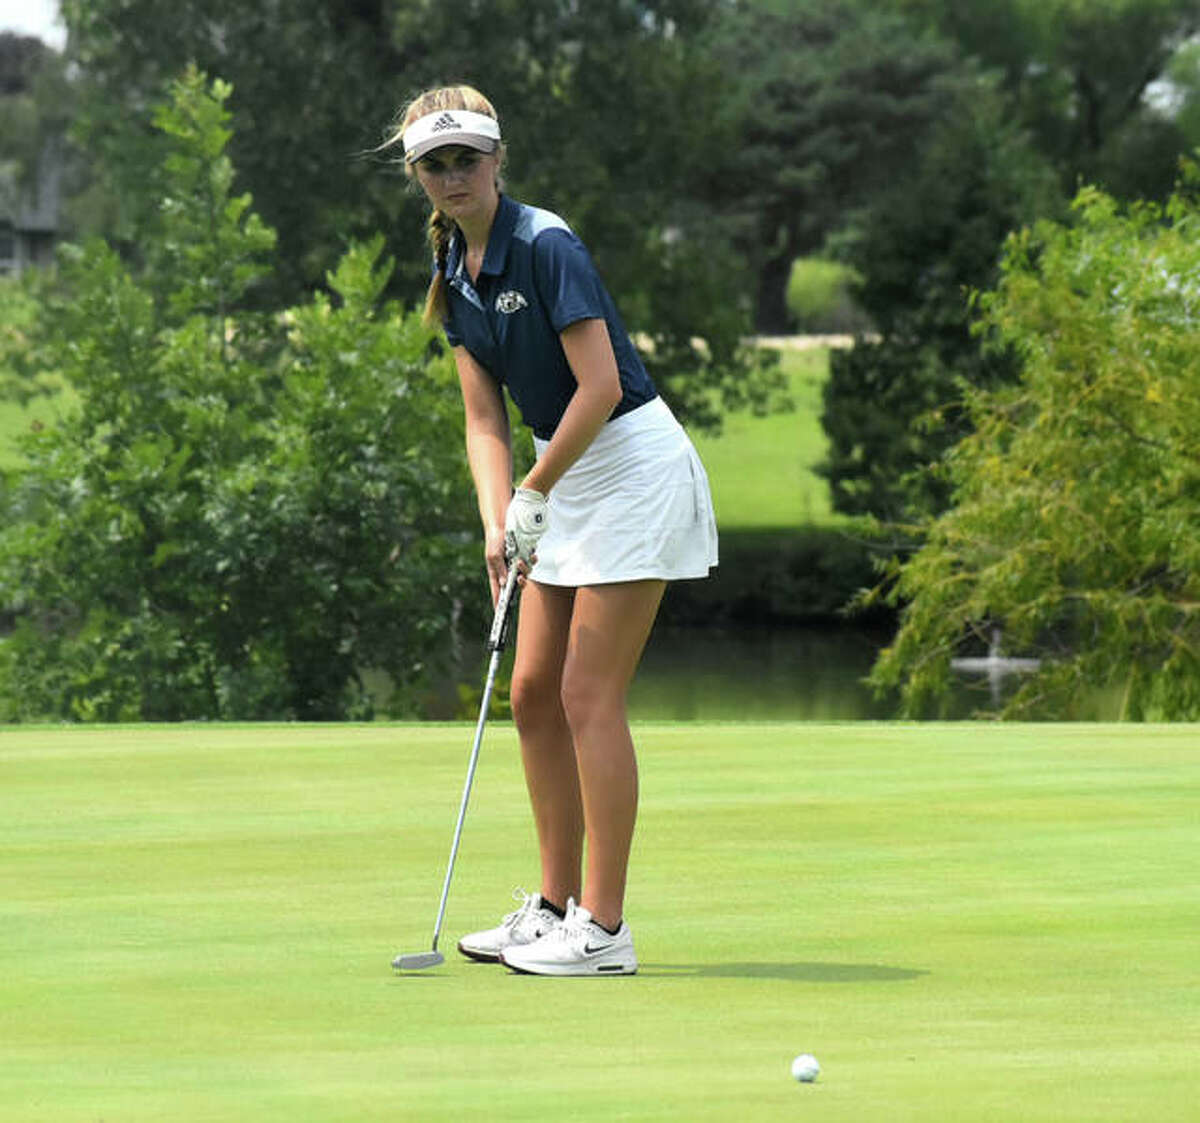 Father McGivney senior Ellie Hyten rolls a putt on No. 3 at Legacy Golf Course during the Madison County Tournament on Tuesday in Granite City.